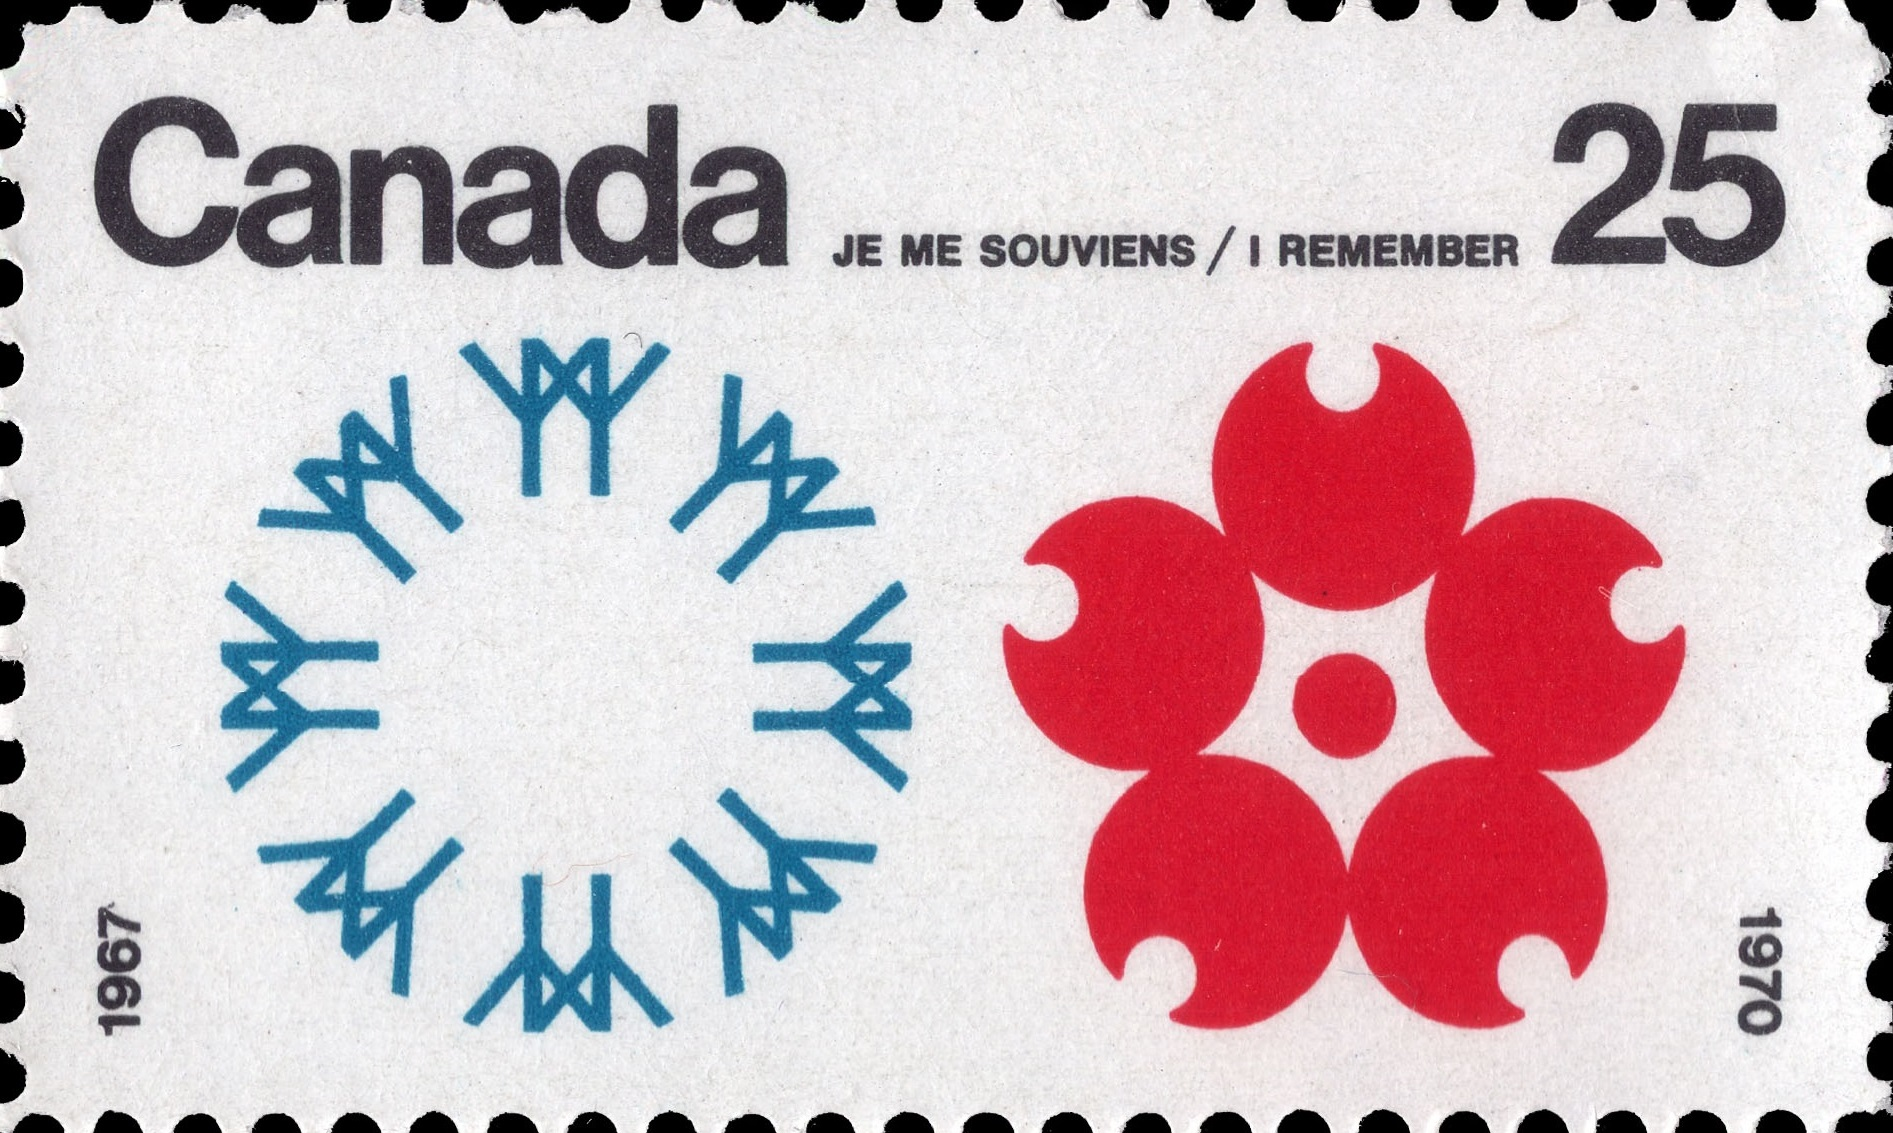 I Remember, 1967, 1970 Canada Postage Stamp